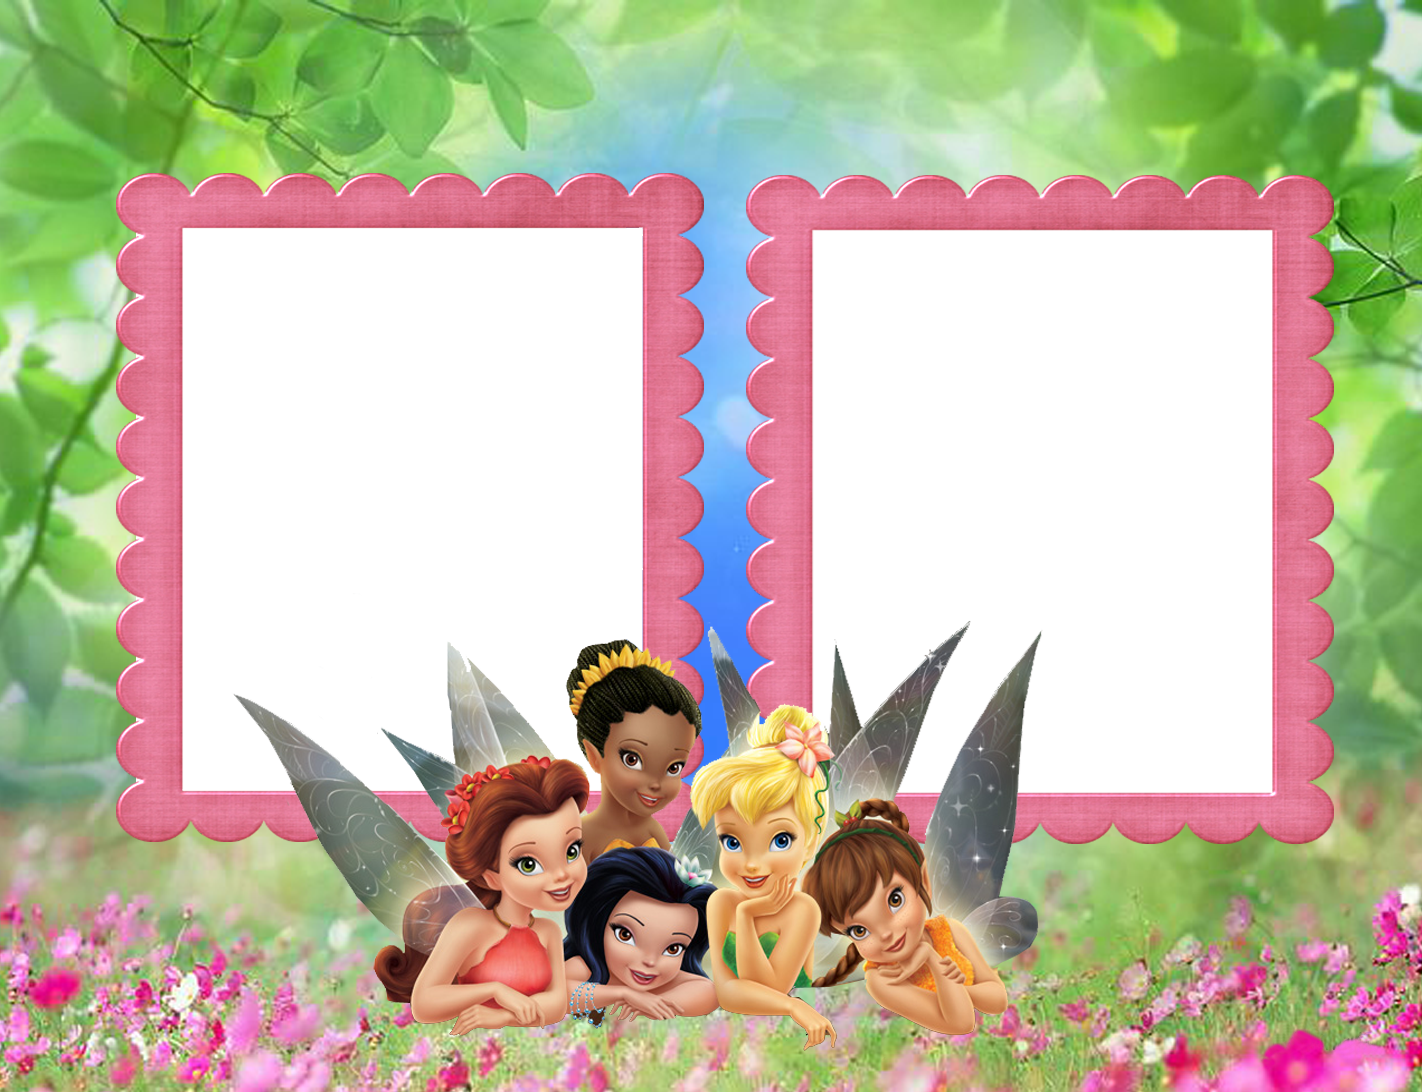 Tinkerbell clipart pink. Kids transparent frame with